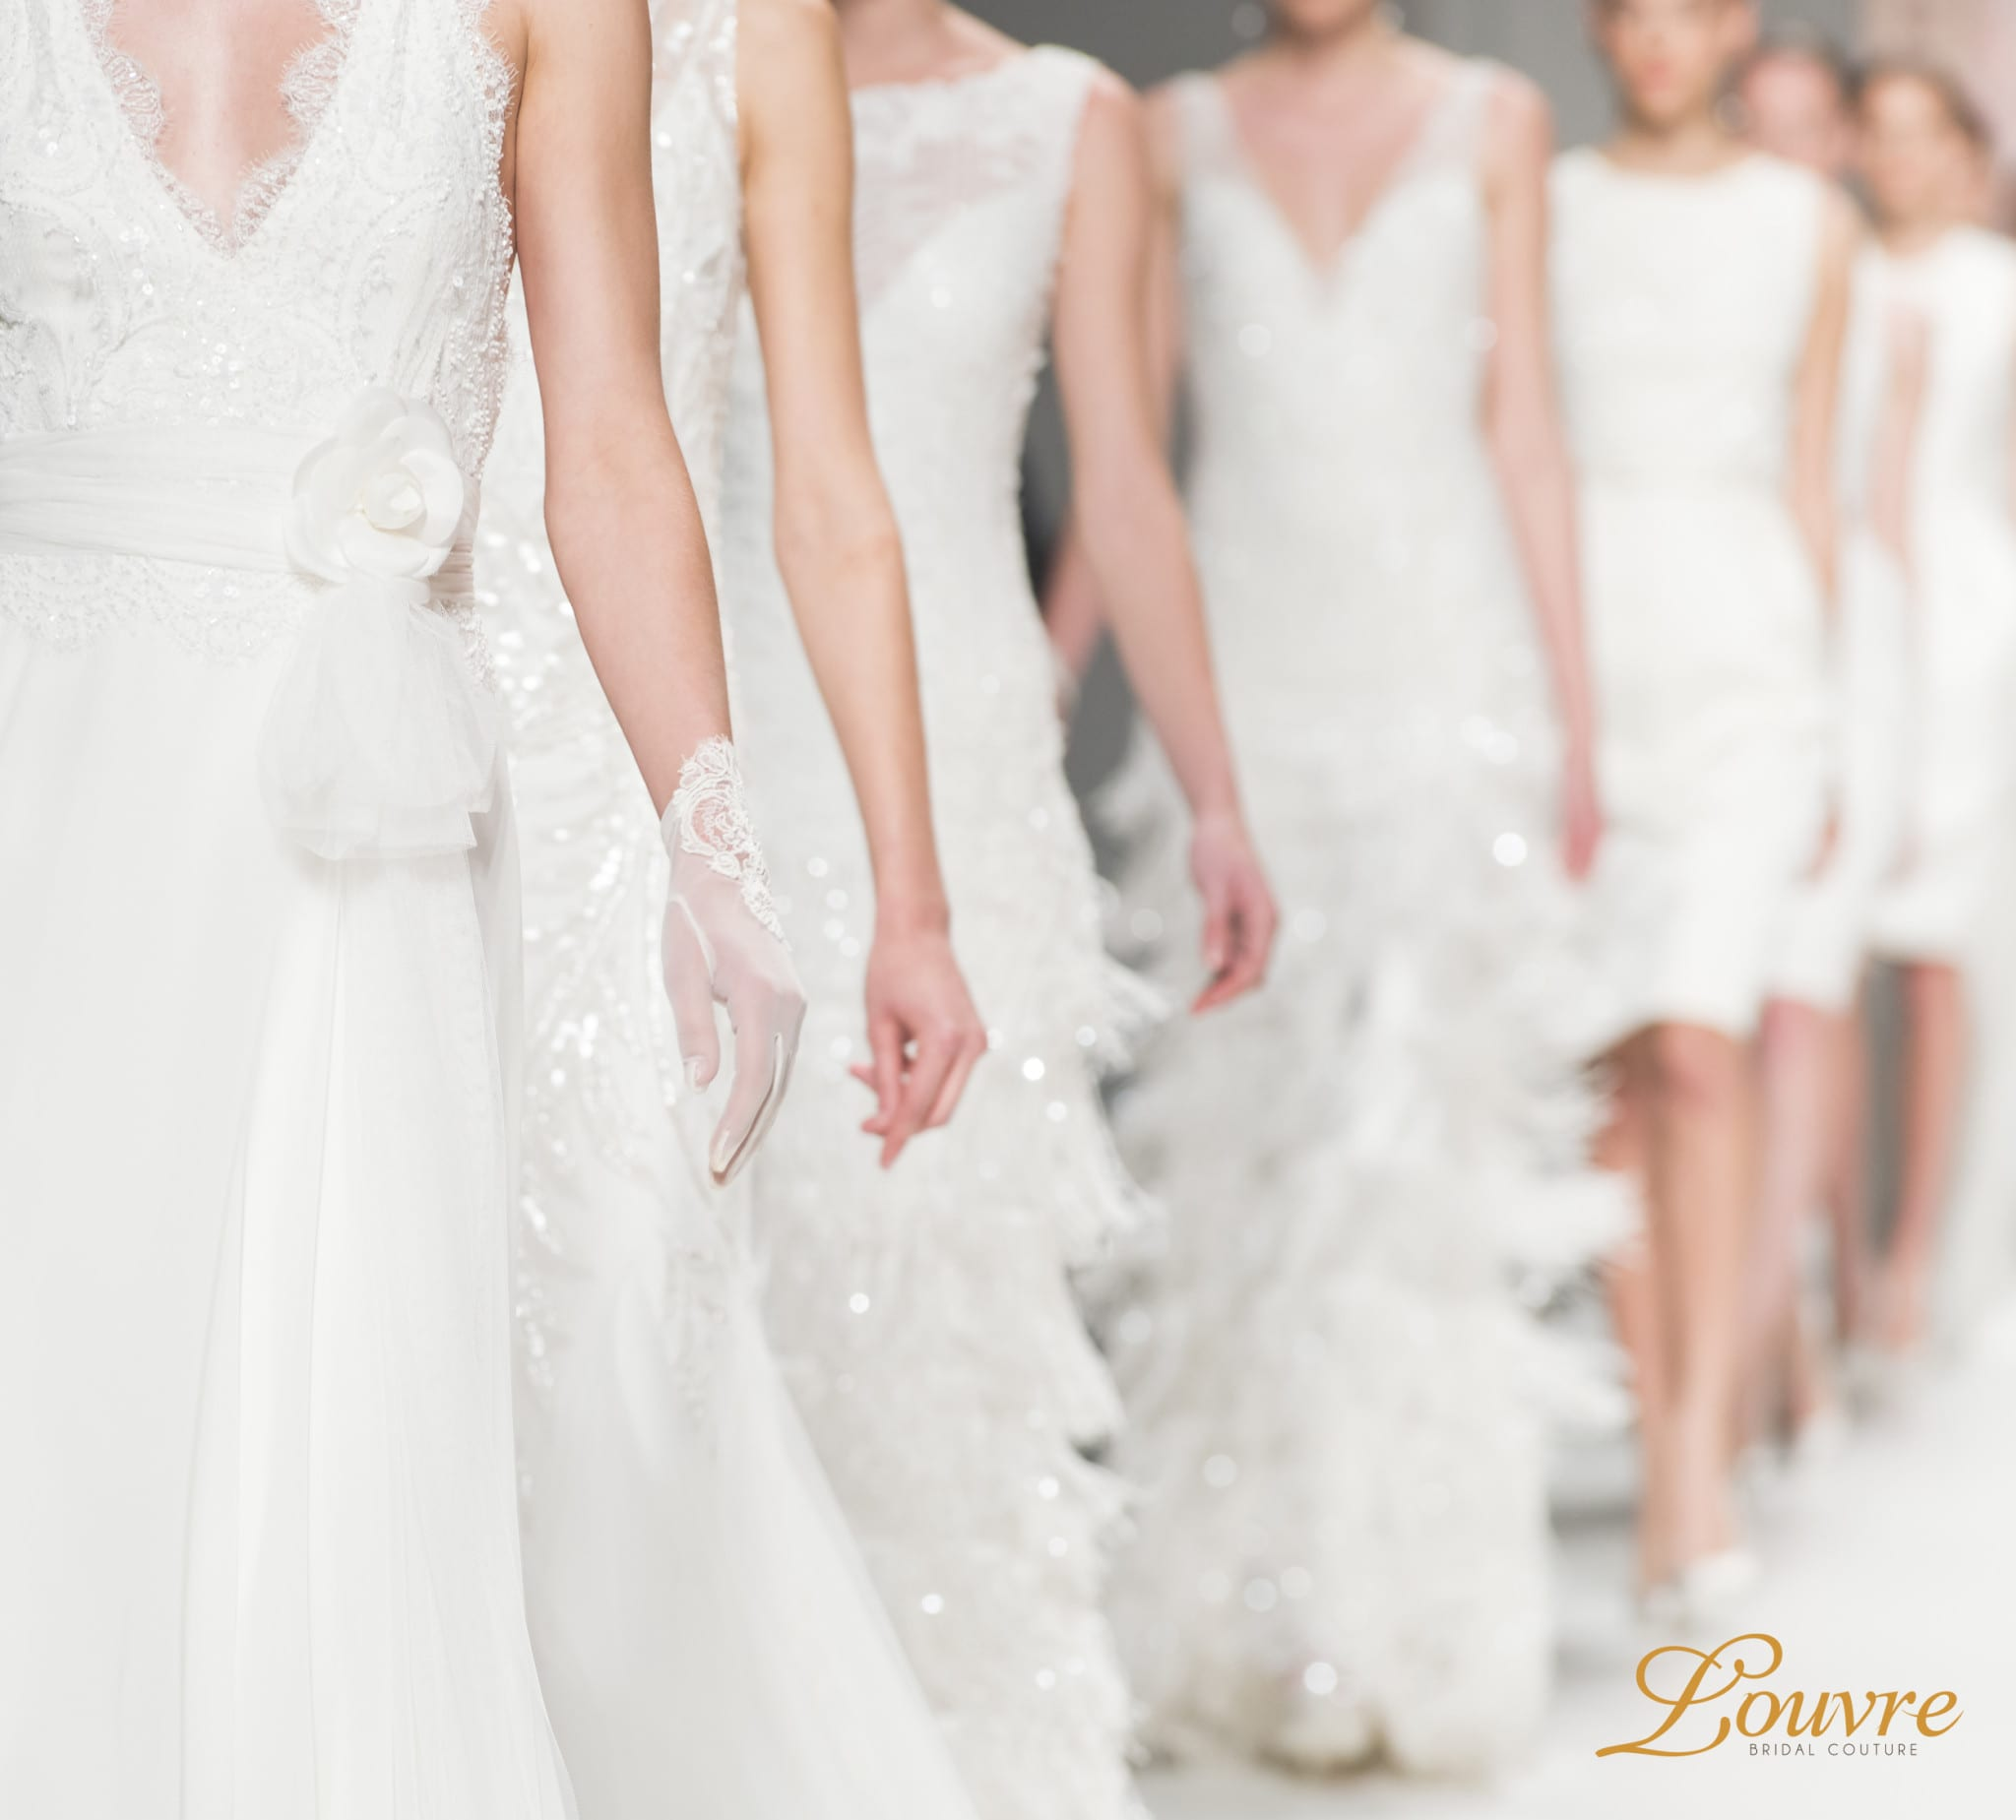 Bridal Gown Tips: 5 Secrets on How to Select Your Dream Gown